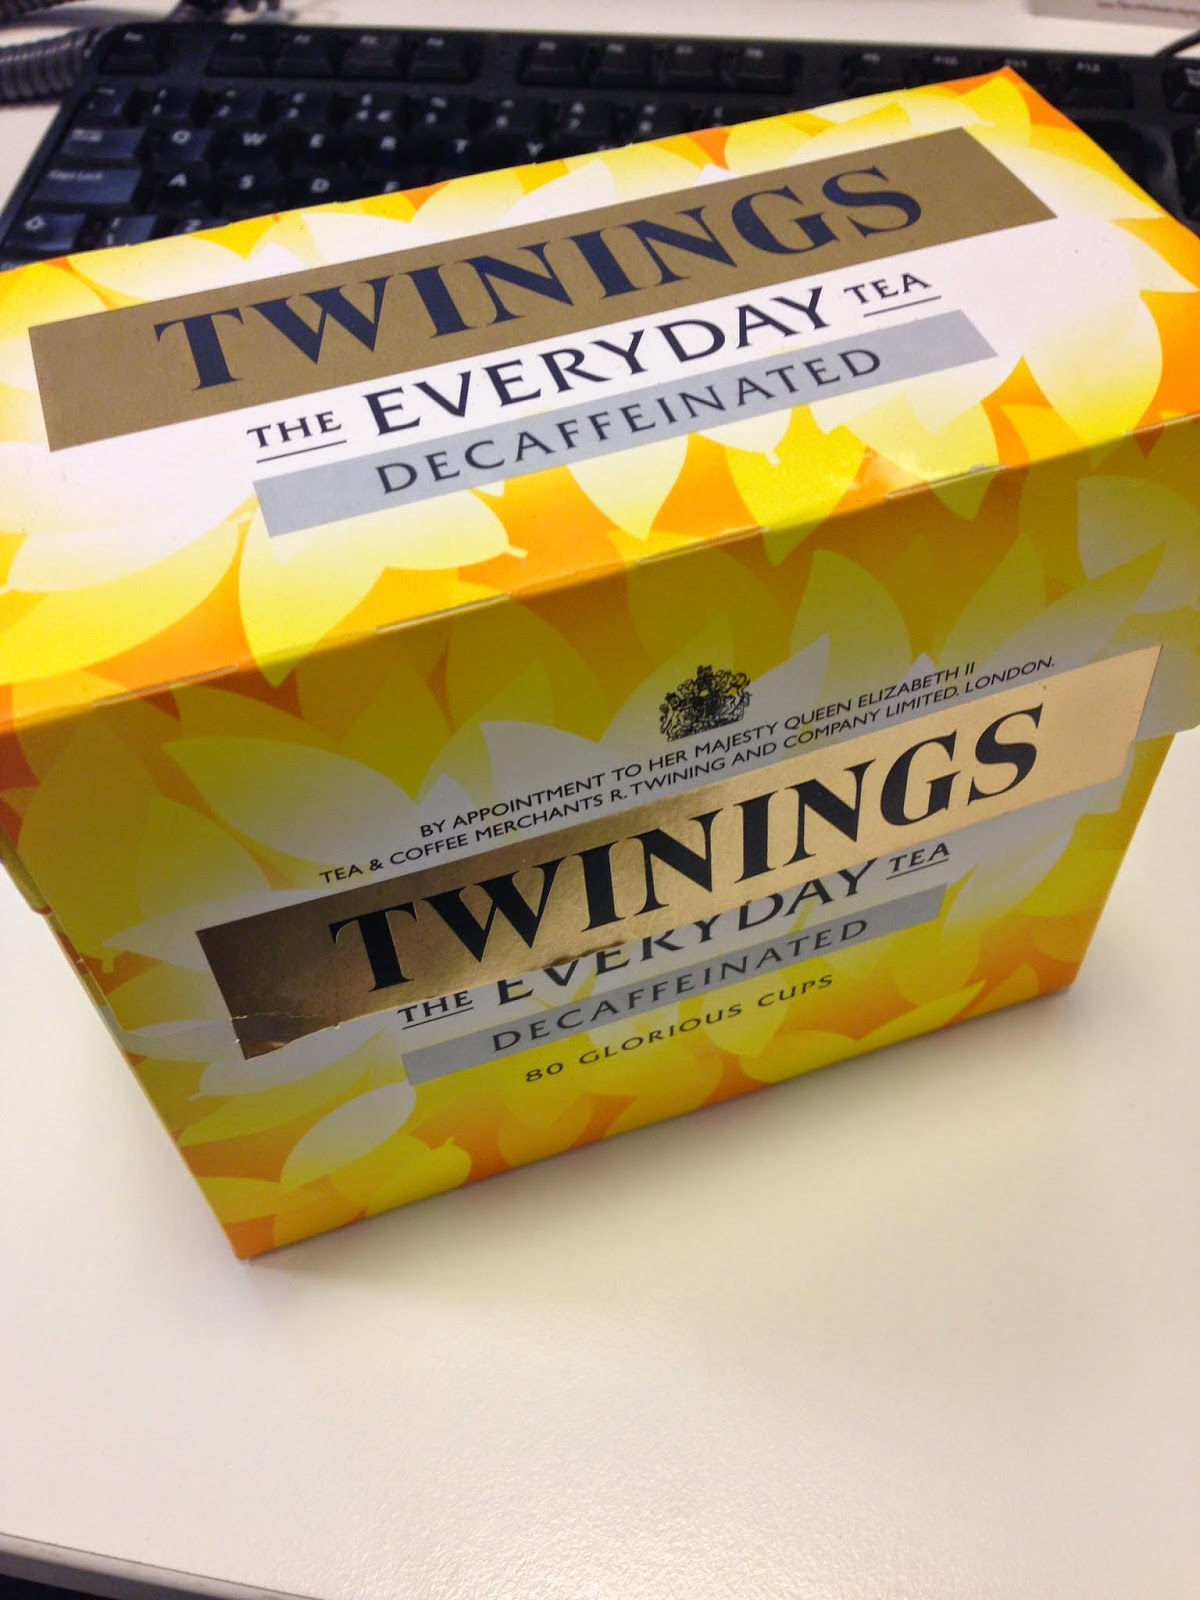 Twinings Decaf Everyday Tea